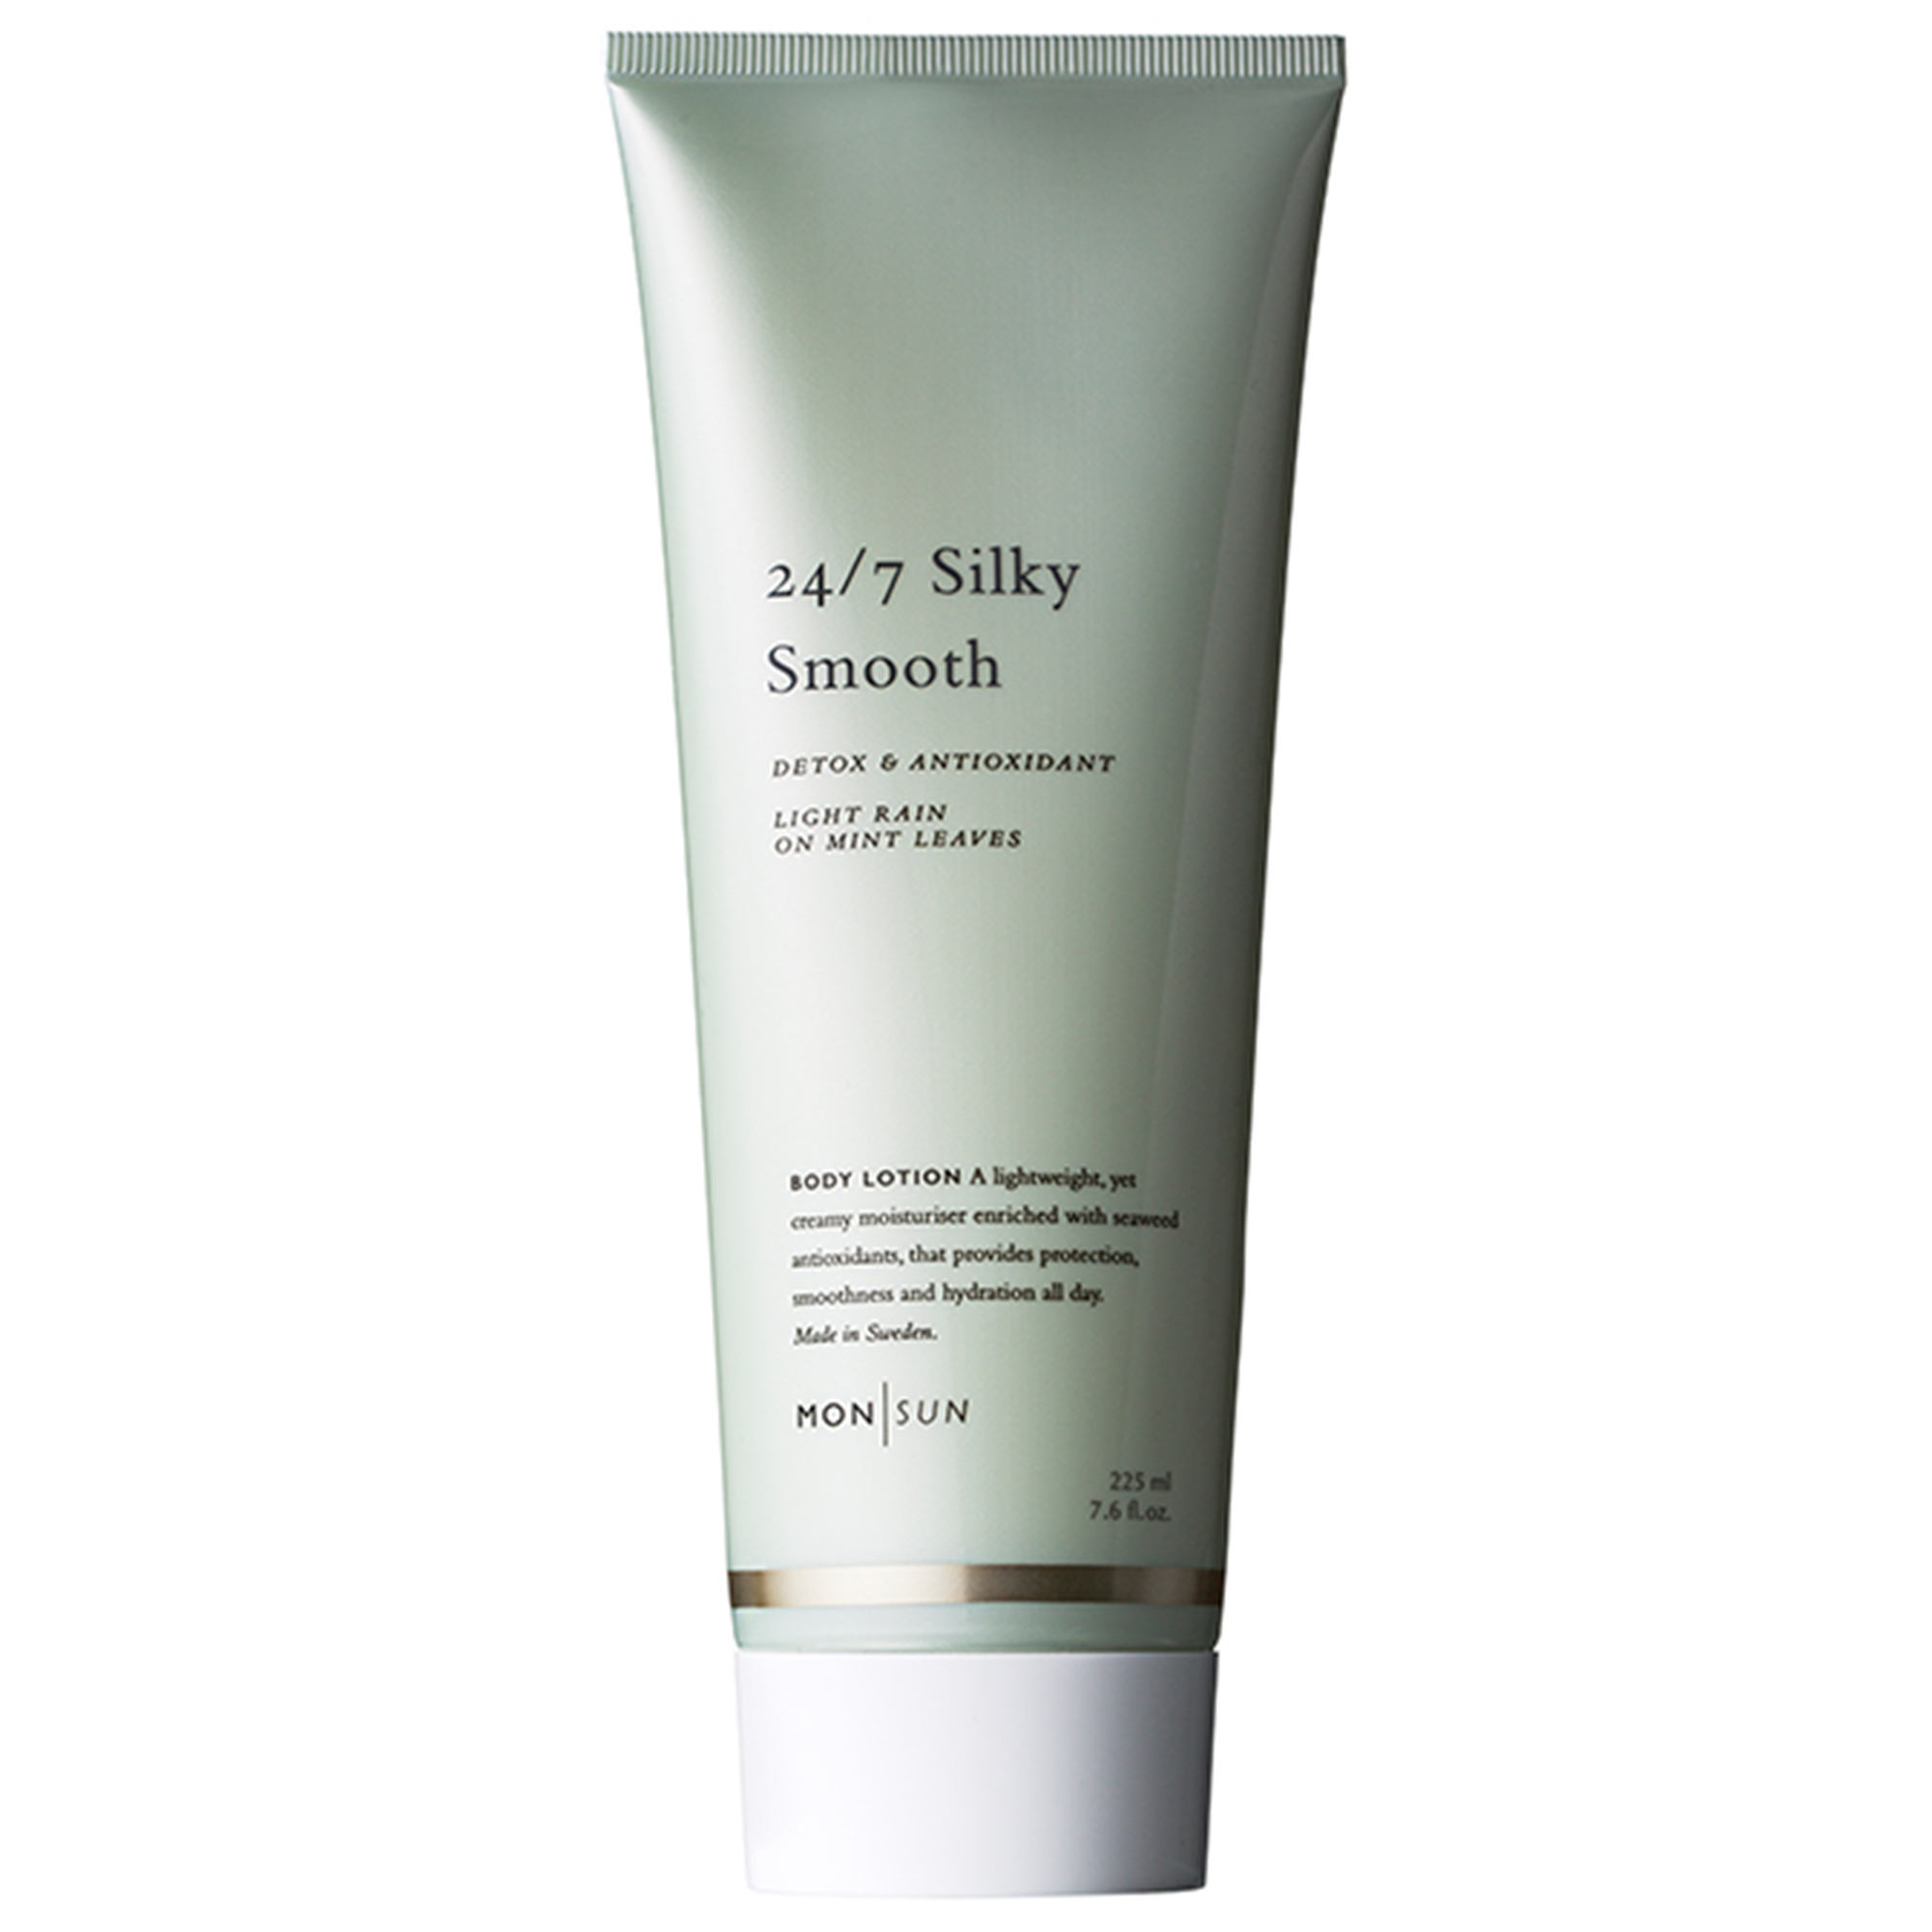 Silky Smooth Detox & Antioxidant Body Lotion